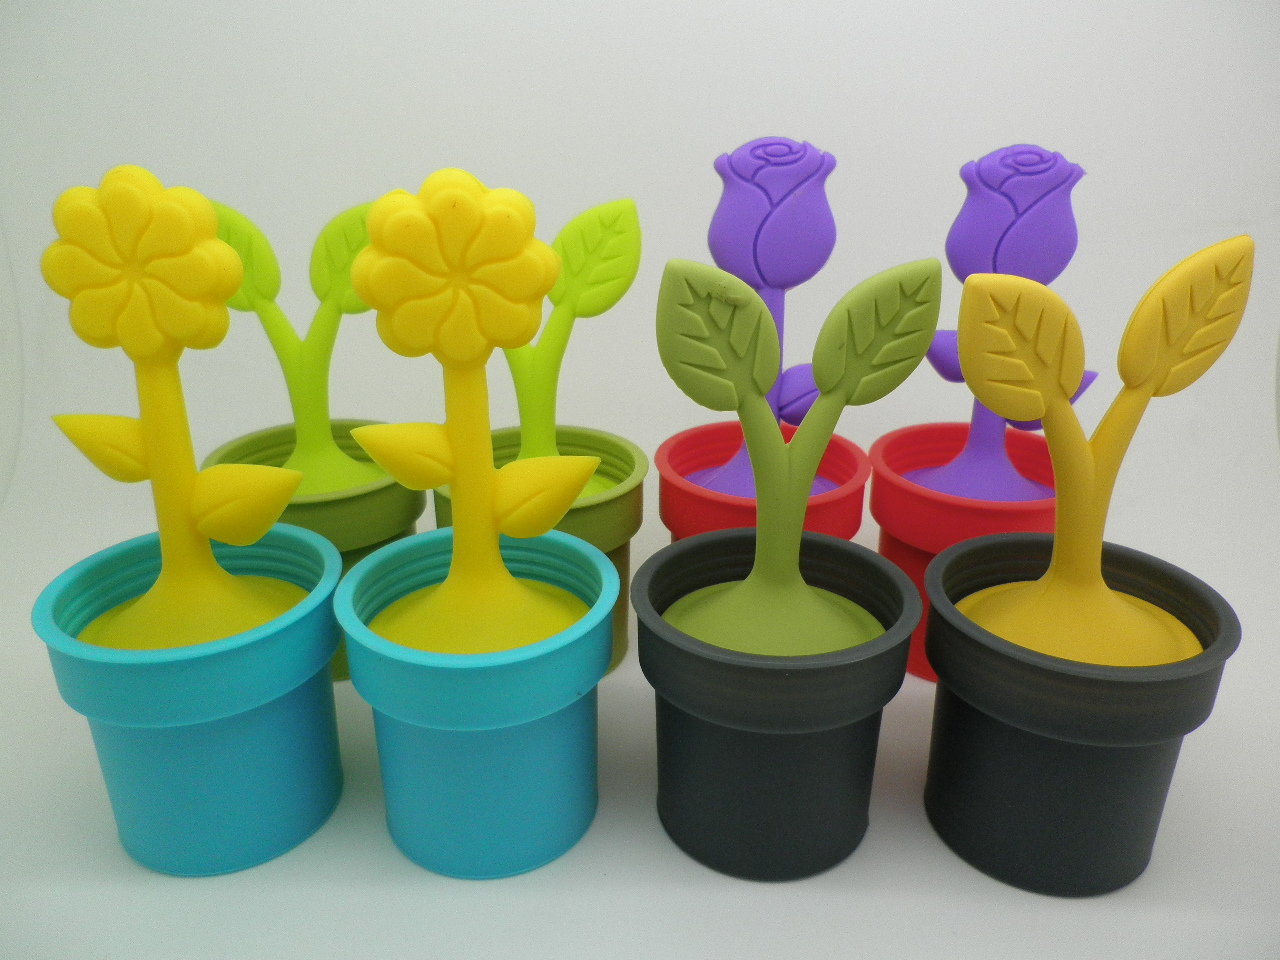 http://www.refinehksilicone.cn/data/images/product/20180417100850_757.JPG